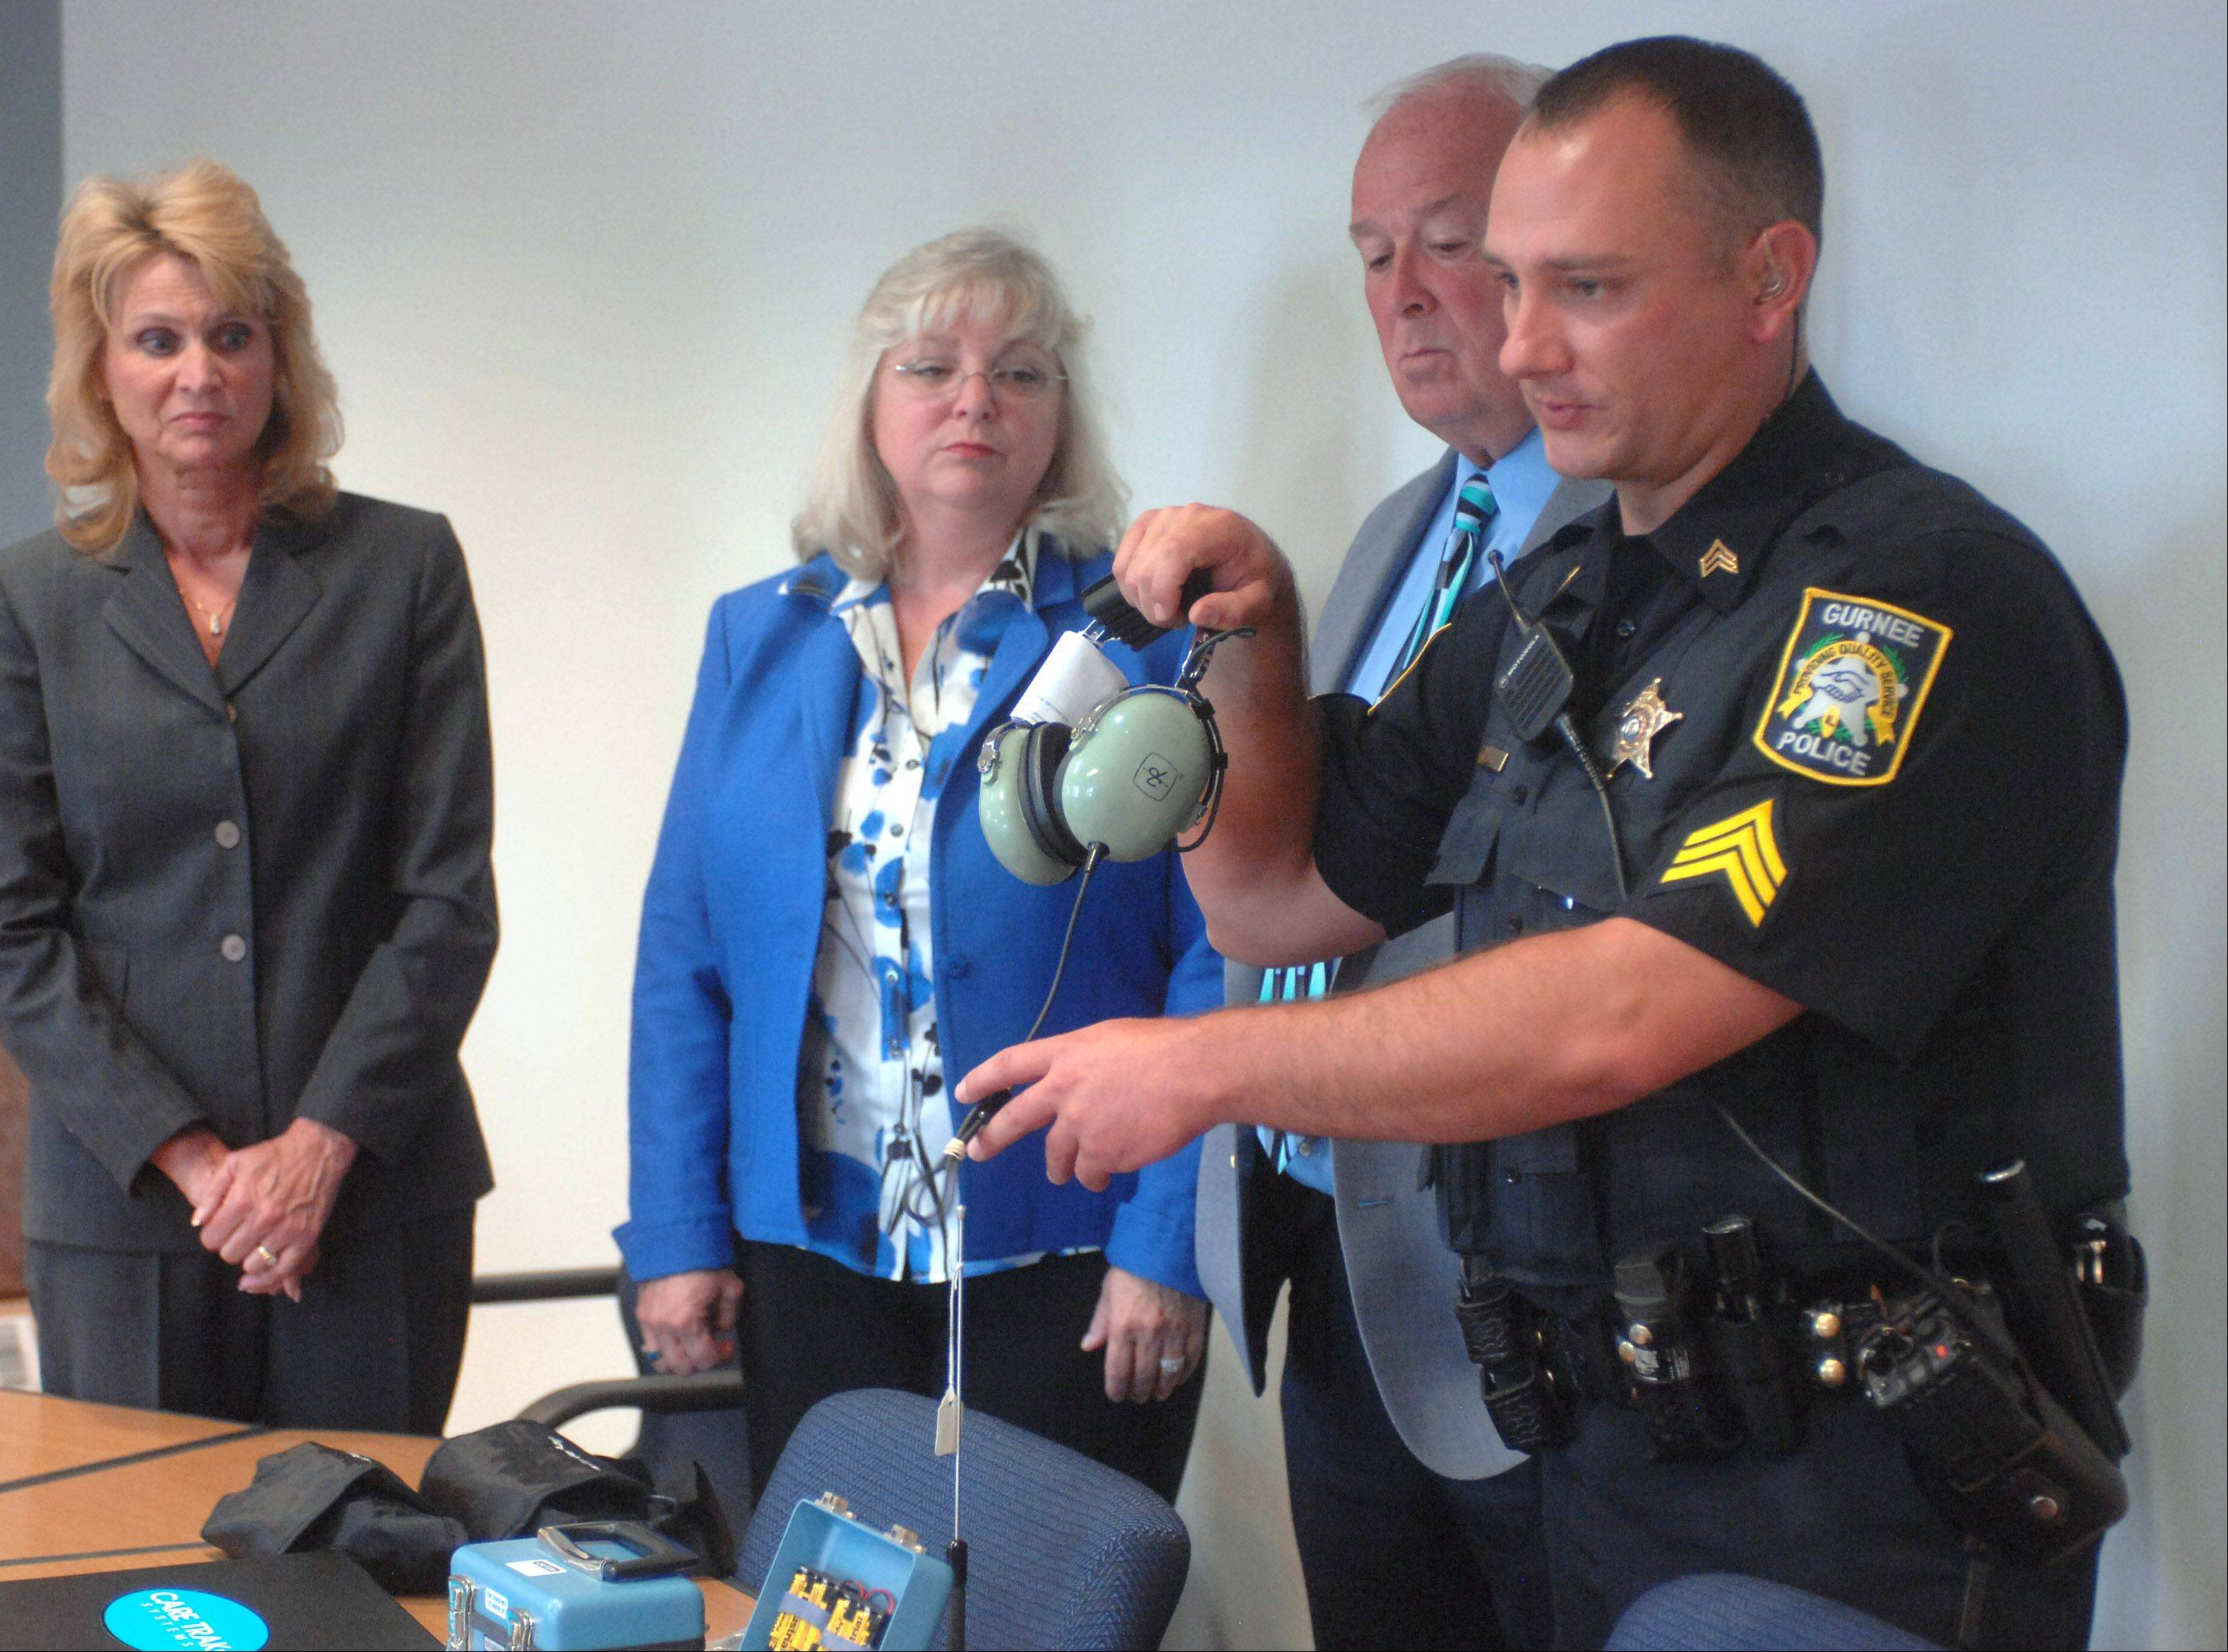 Gurnee police Sgt. Brian Smith, right, explains the Care Trak equipment Thursday morning in Gurnee during a news conference. From left, Mayor Kristina Kovarik, Warren Township supervisor Sue Simpson and Gurnee police chief Bob Jones also participated in the announcement.